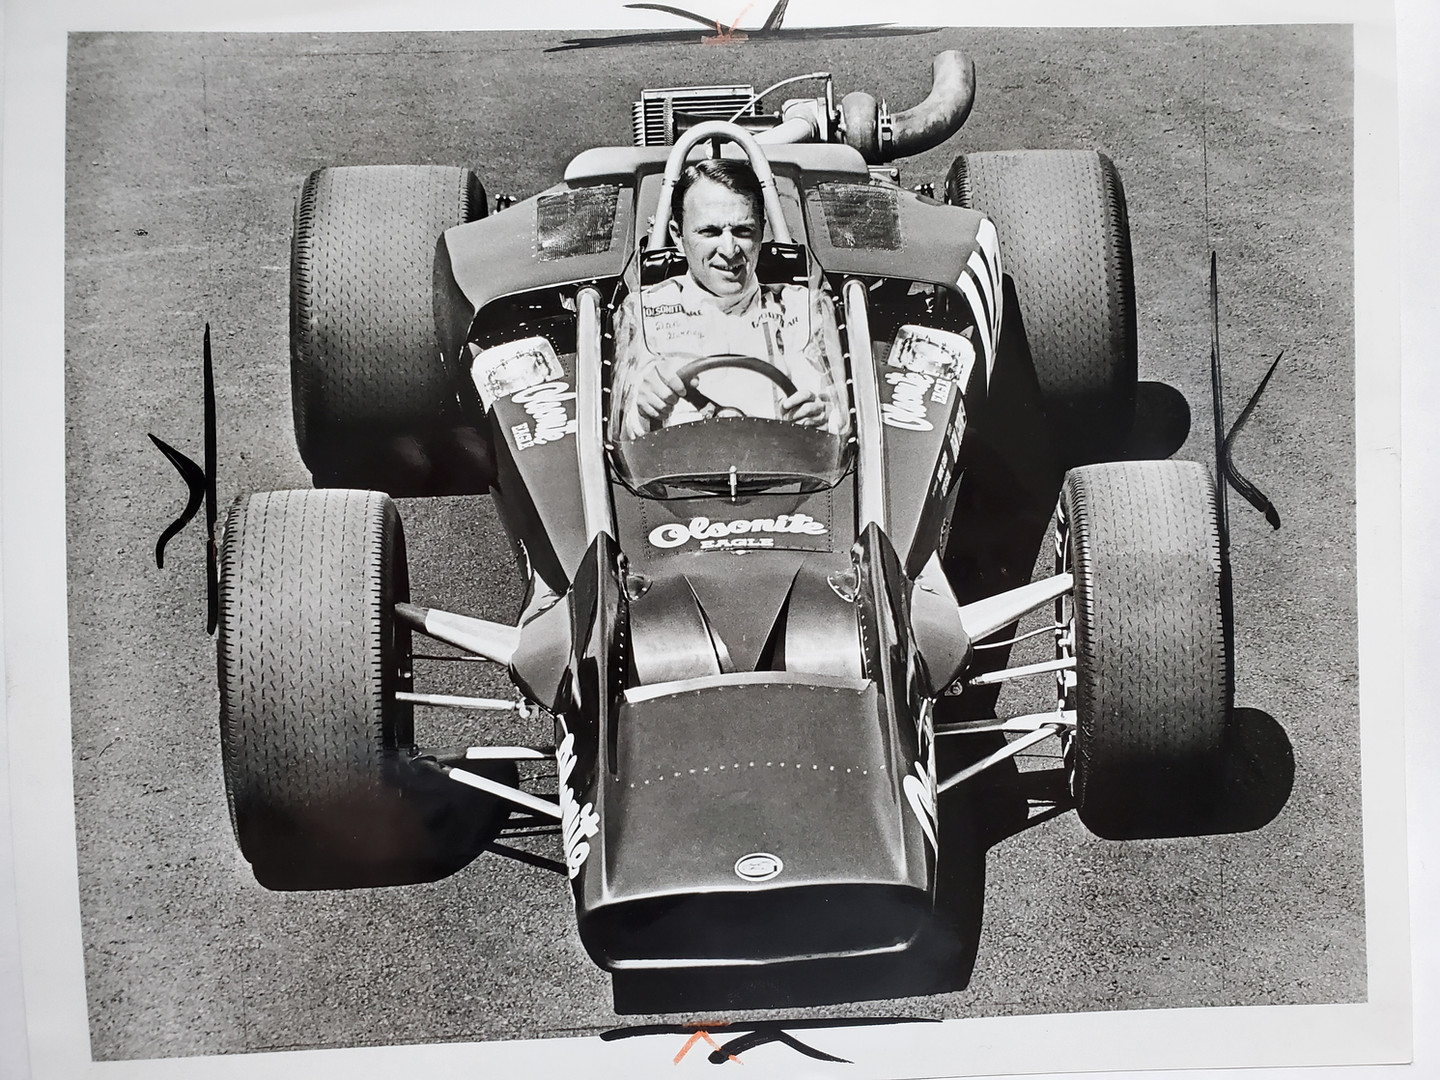 Dan Gurney May 1970  Olsonite Eagle-Offy